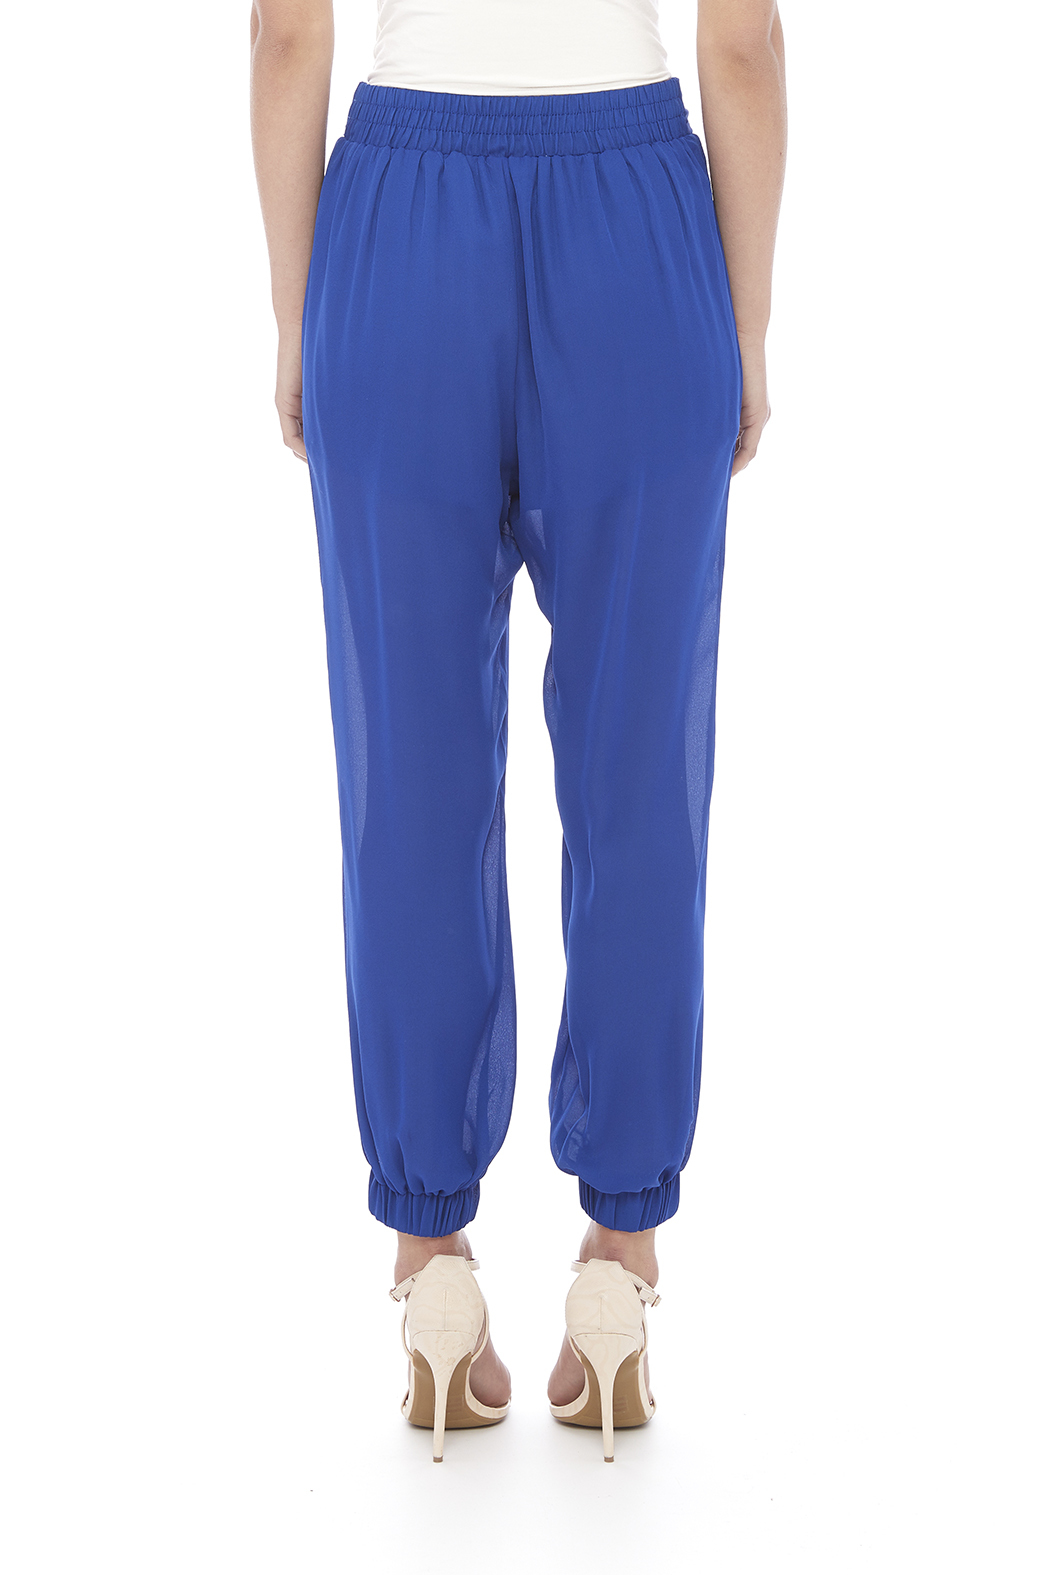 miss avenue  Lined Jogger Pants - Back Cropped Image